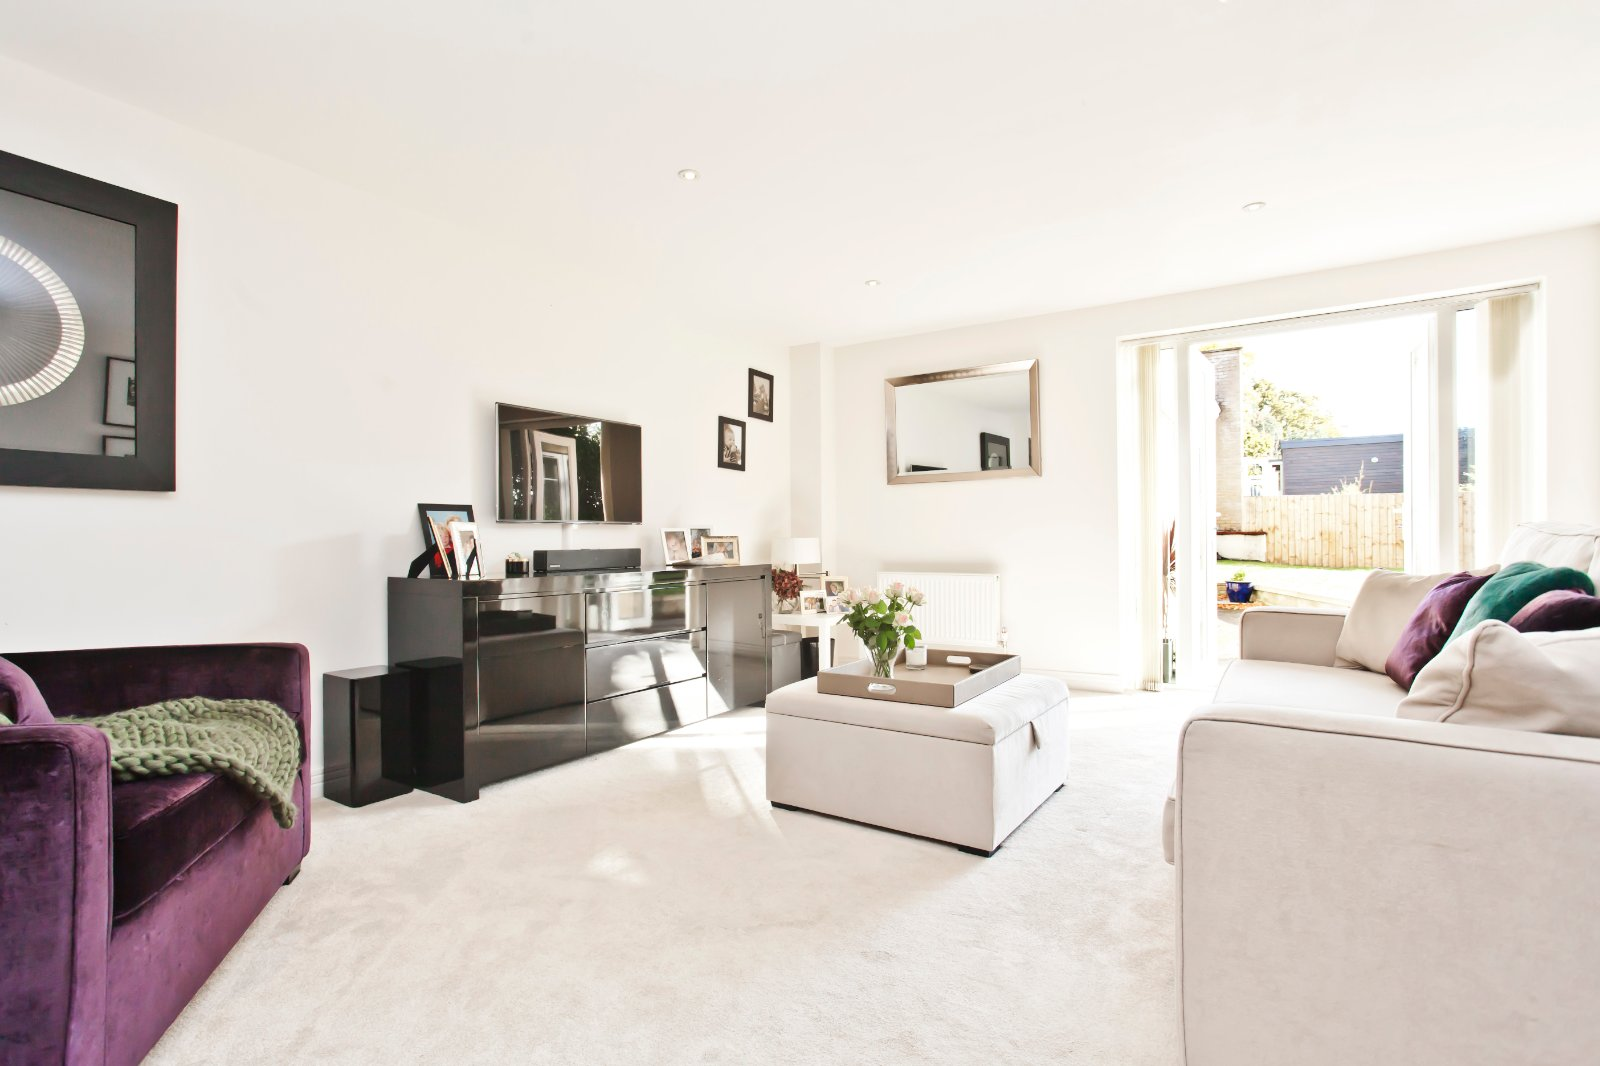 3 bed apartment for sale in Lower Parkstone 0